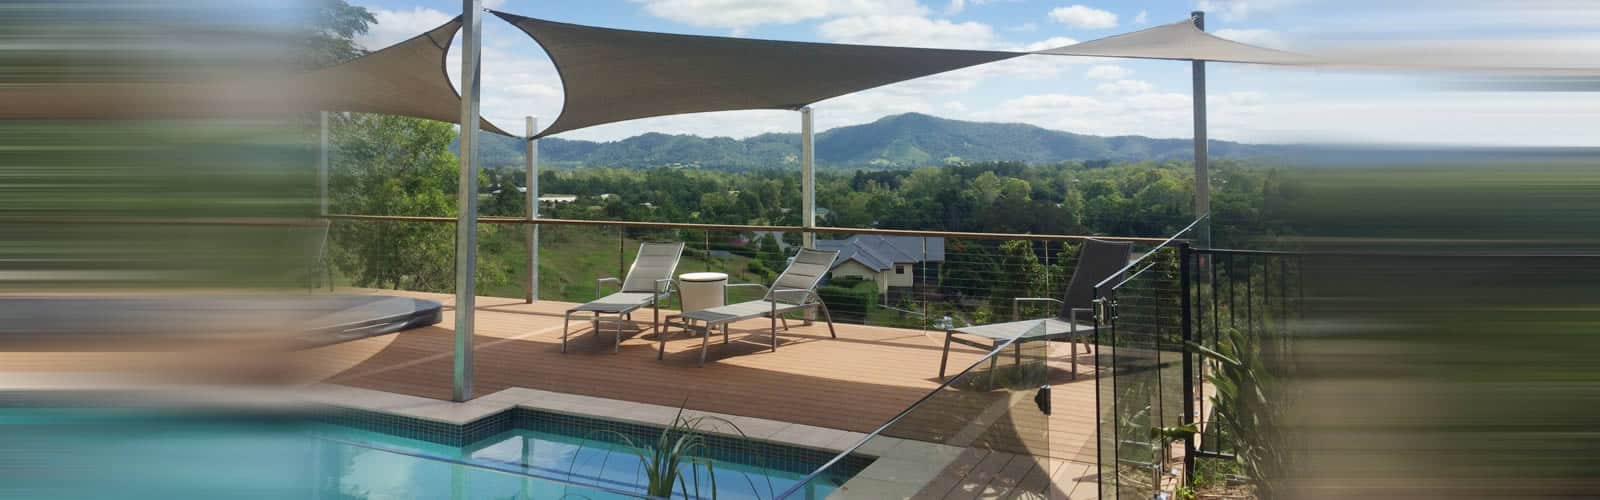 Spa and pool deck shade sail